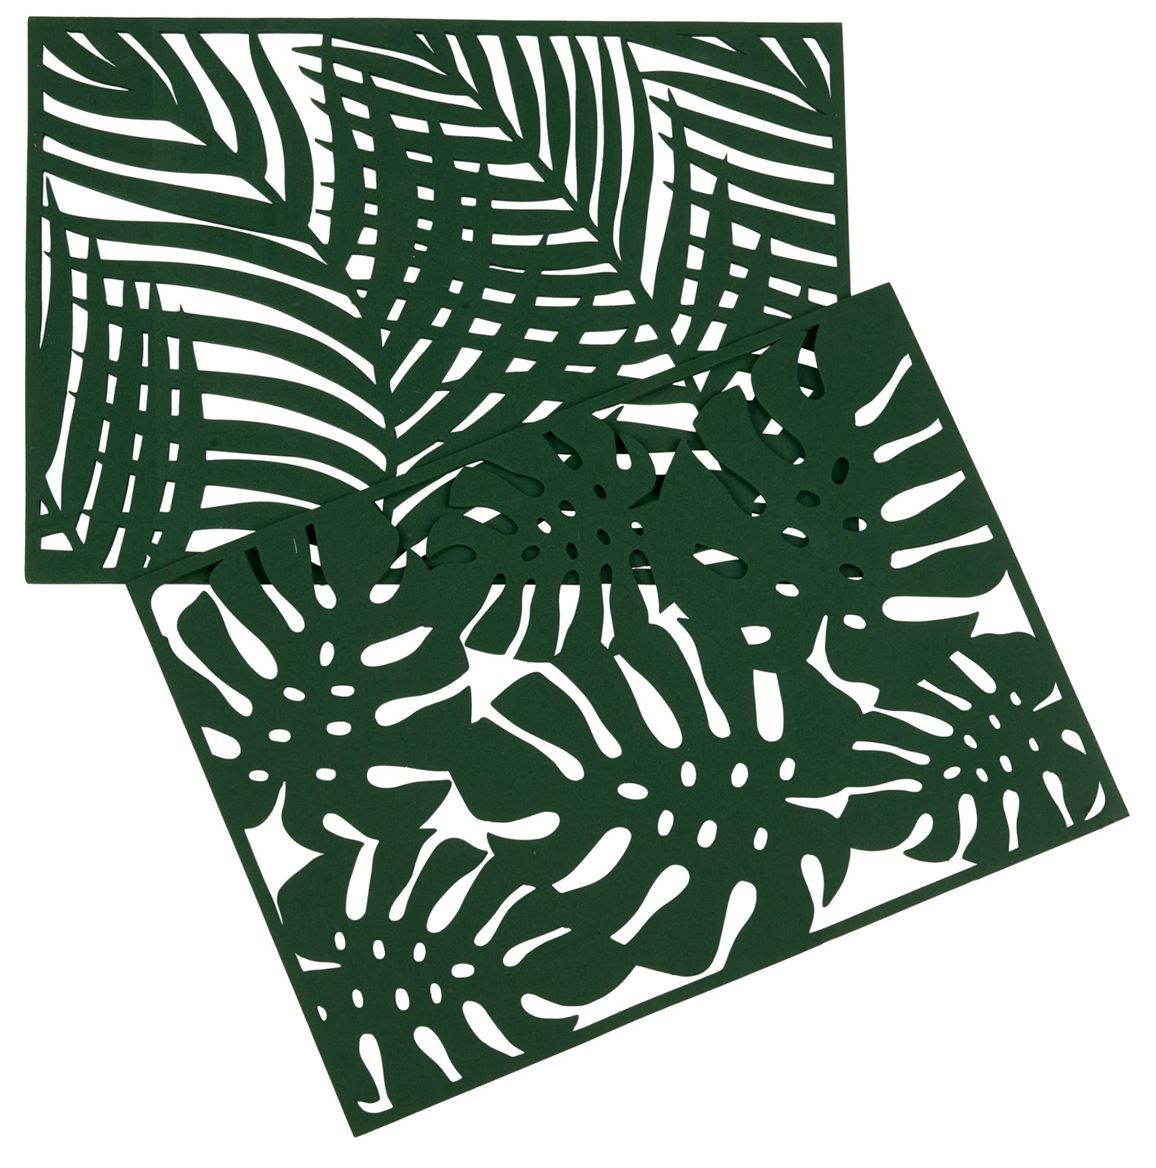 JUNGLE Placemat groen B 32 x L 45 cm_jungle-placemat-groen-b-32-x-l-45-cm